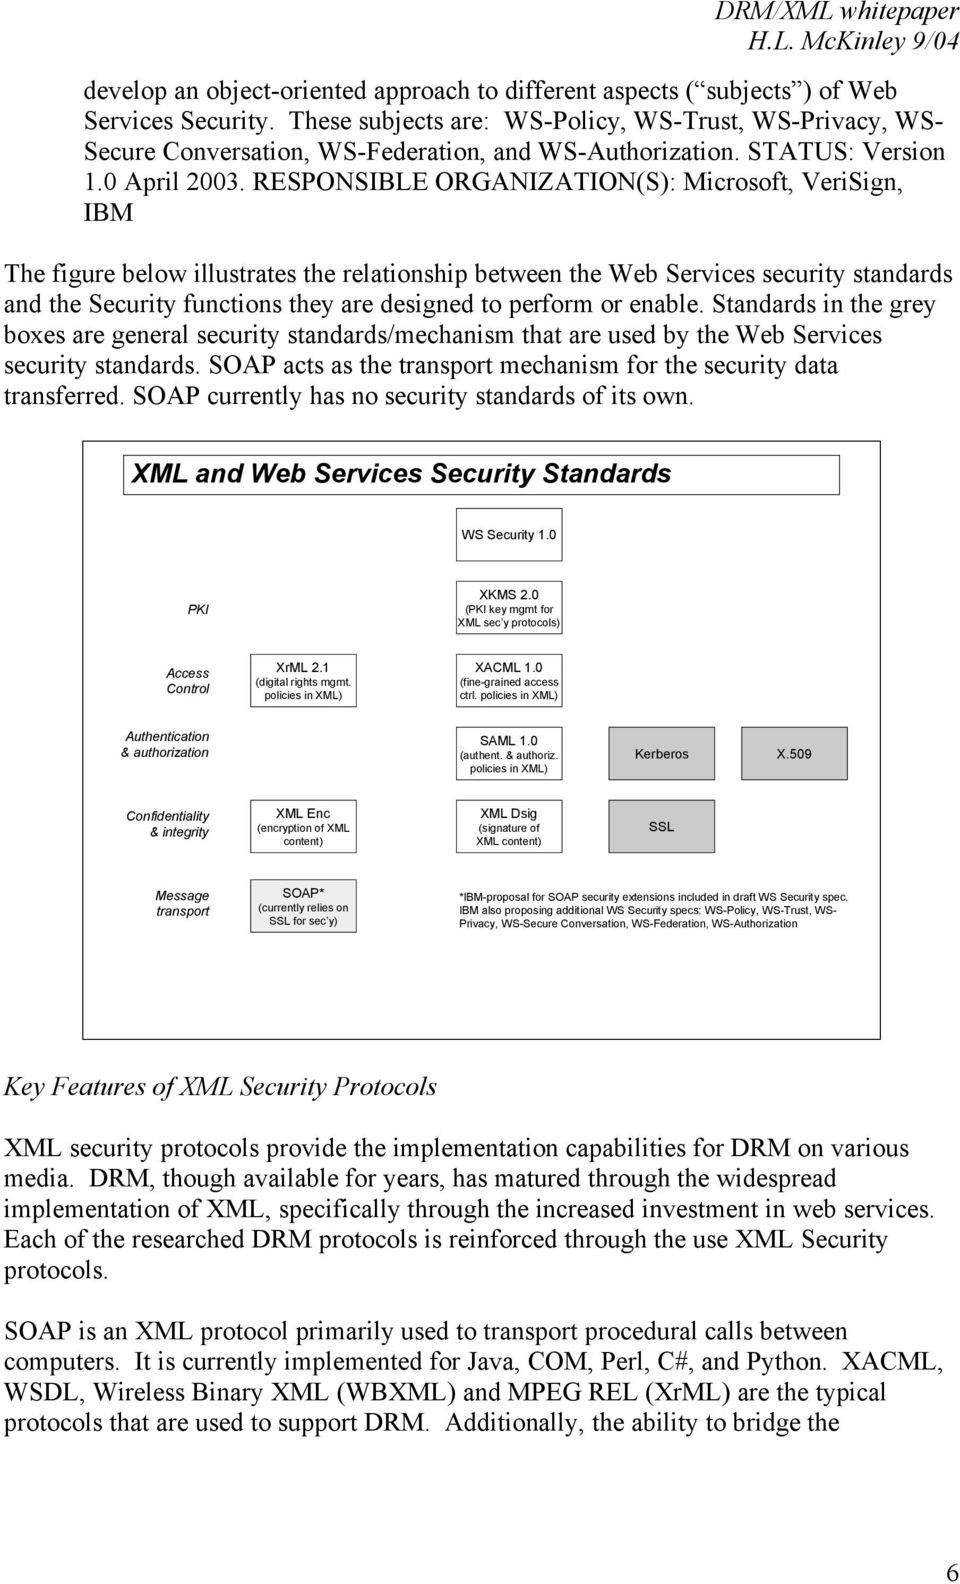 RESPONSIBLE ORGANIZATION(S): Microsoft, VeriSign, IBM The figure below illustrates the relationship between the Web Services security standards and the Security functions they are designed to perform